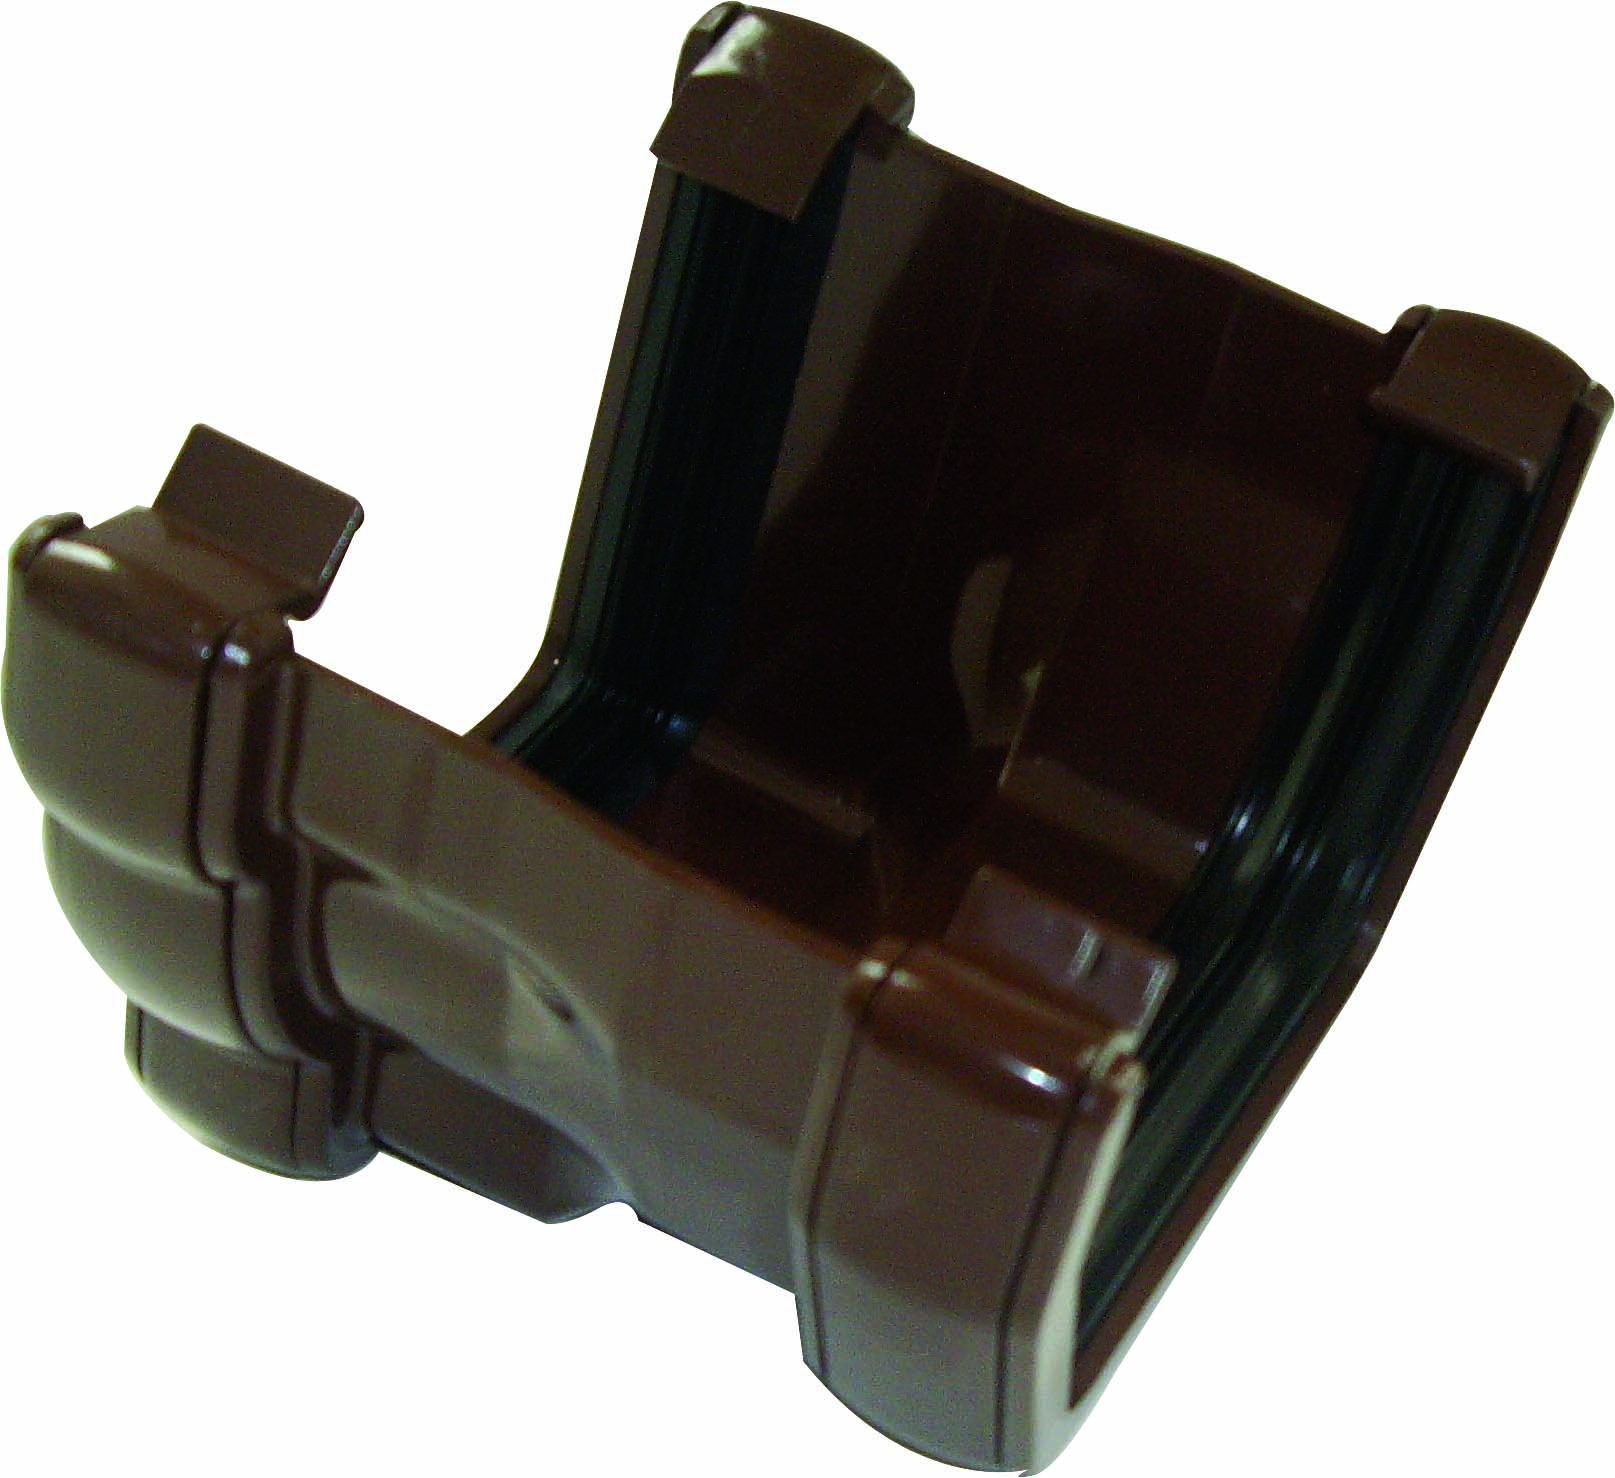 FLOPLAST RNR3BR 110MM NIAGARA TO 112MM HALF ROUND GUTTER ADAPTOR - R/H - BROWN